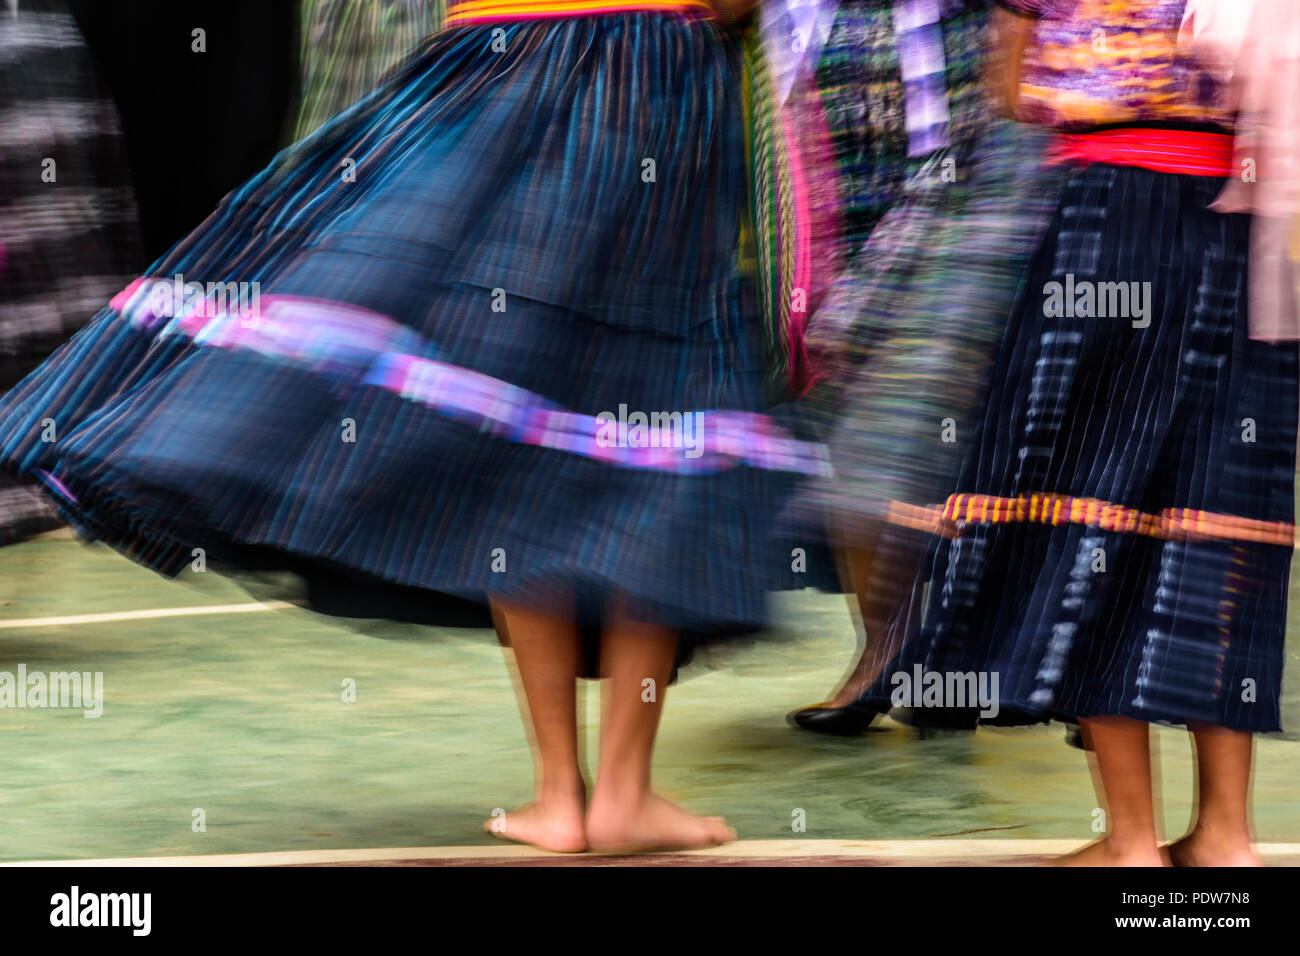 Swirling skirts of traditional Guatemalan folk dancers caught in blur of color and movement. - Stock Image